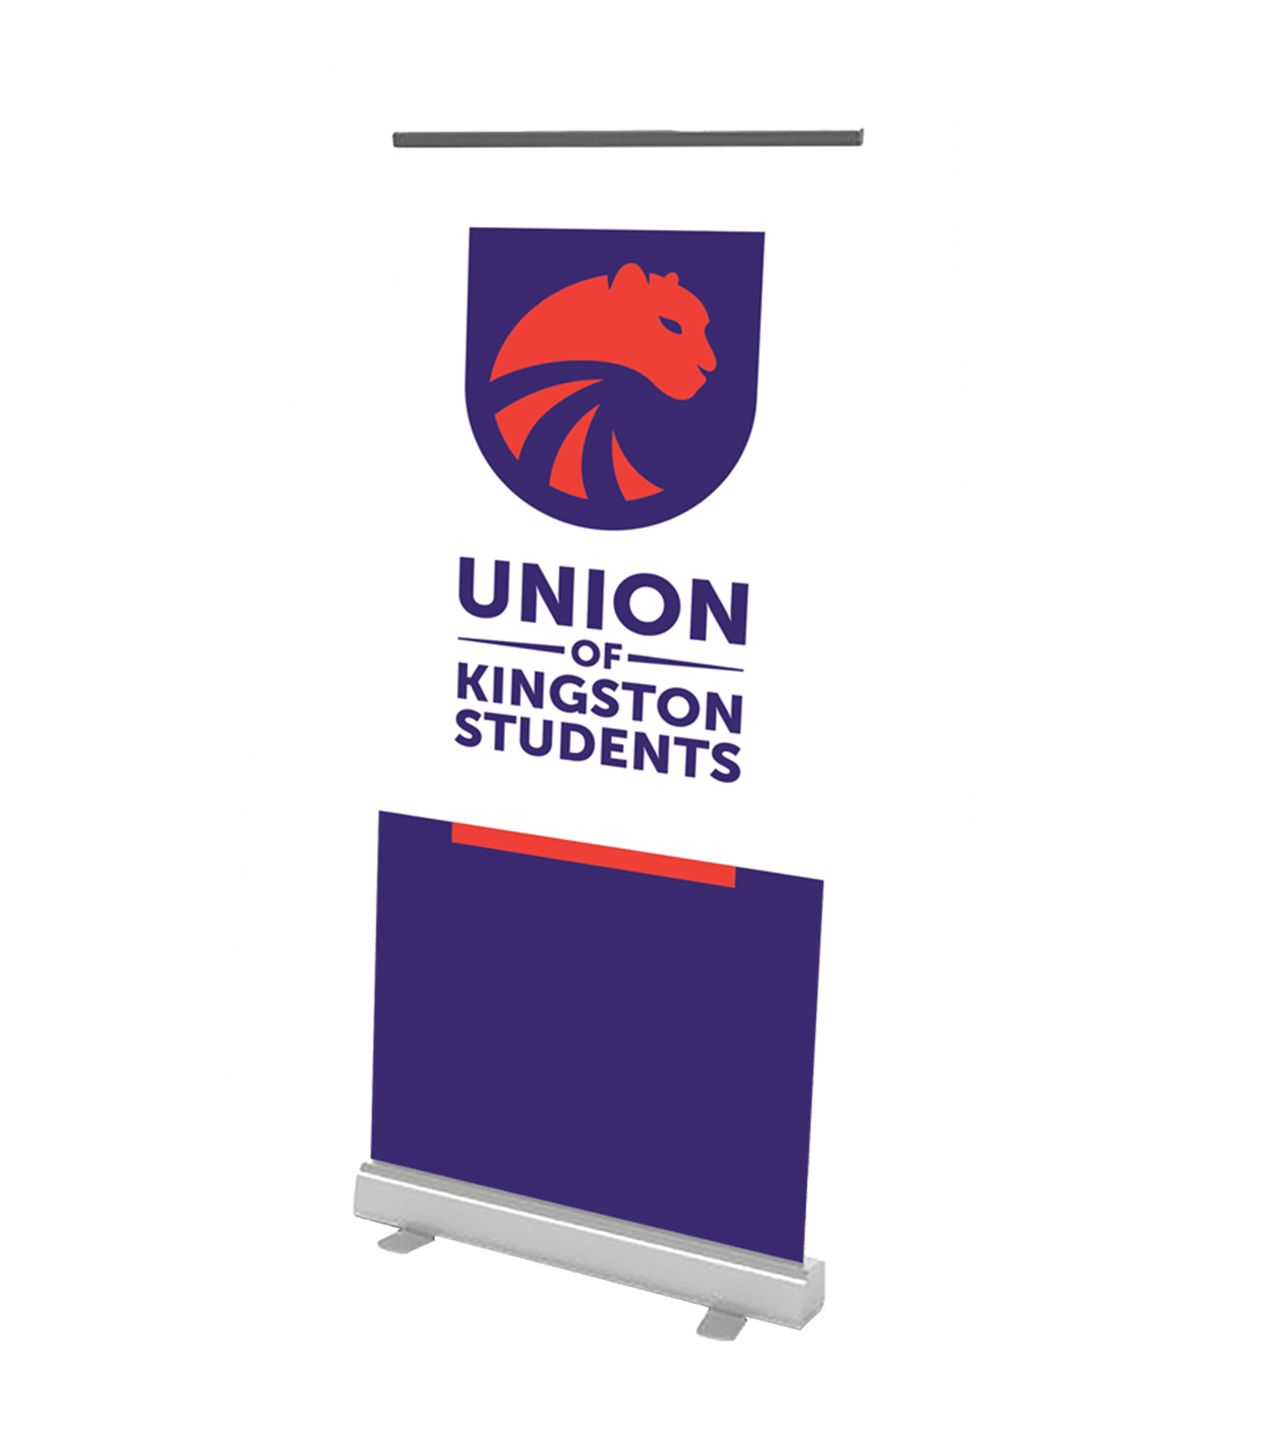 Union of Kingston Students